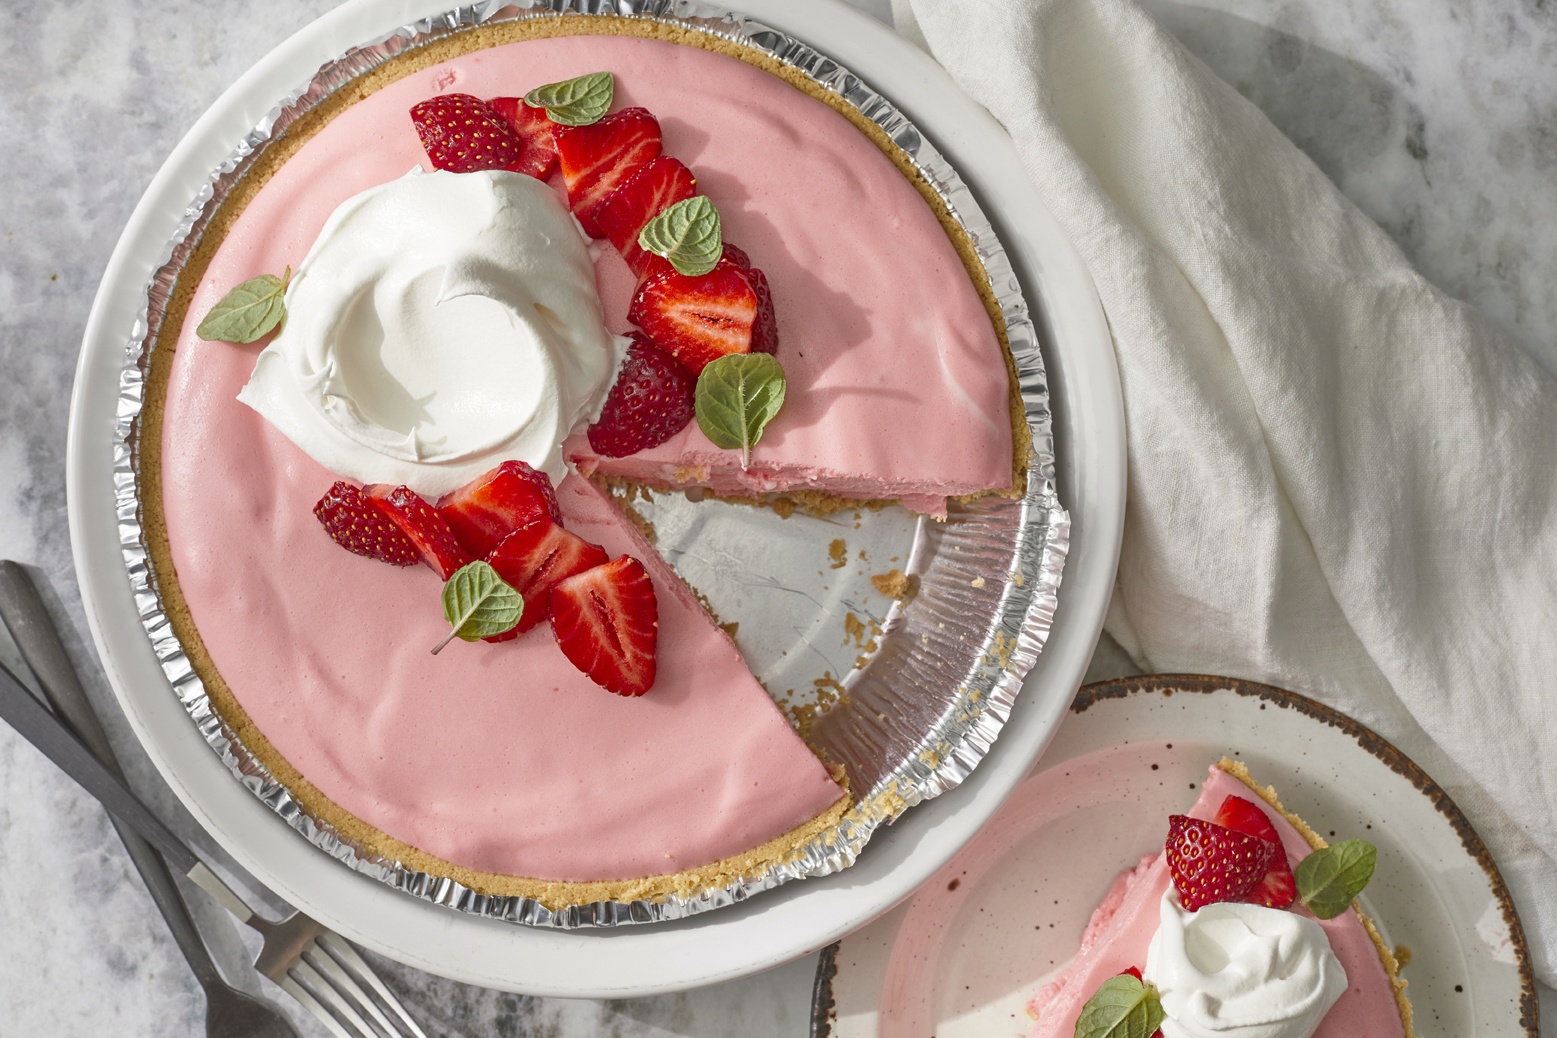 overhead view of a no bake strawberry cheesecake topped with whipped cream and fresh strawberries